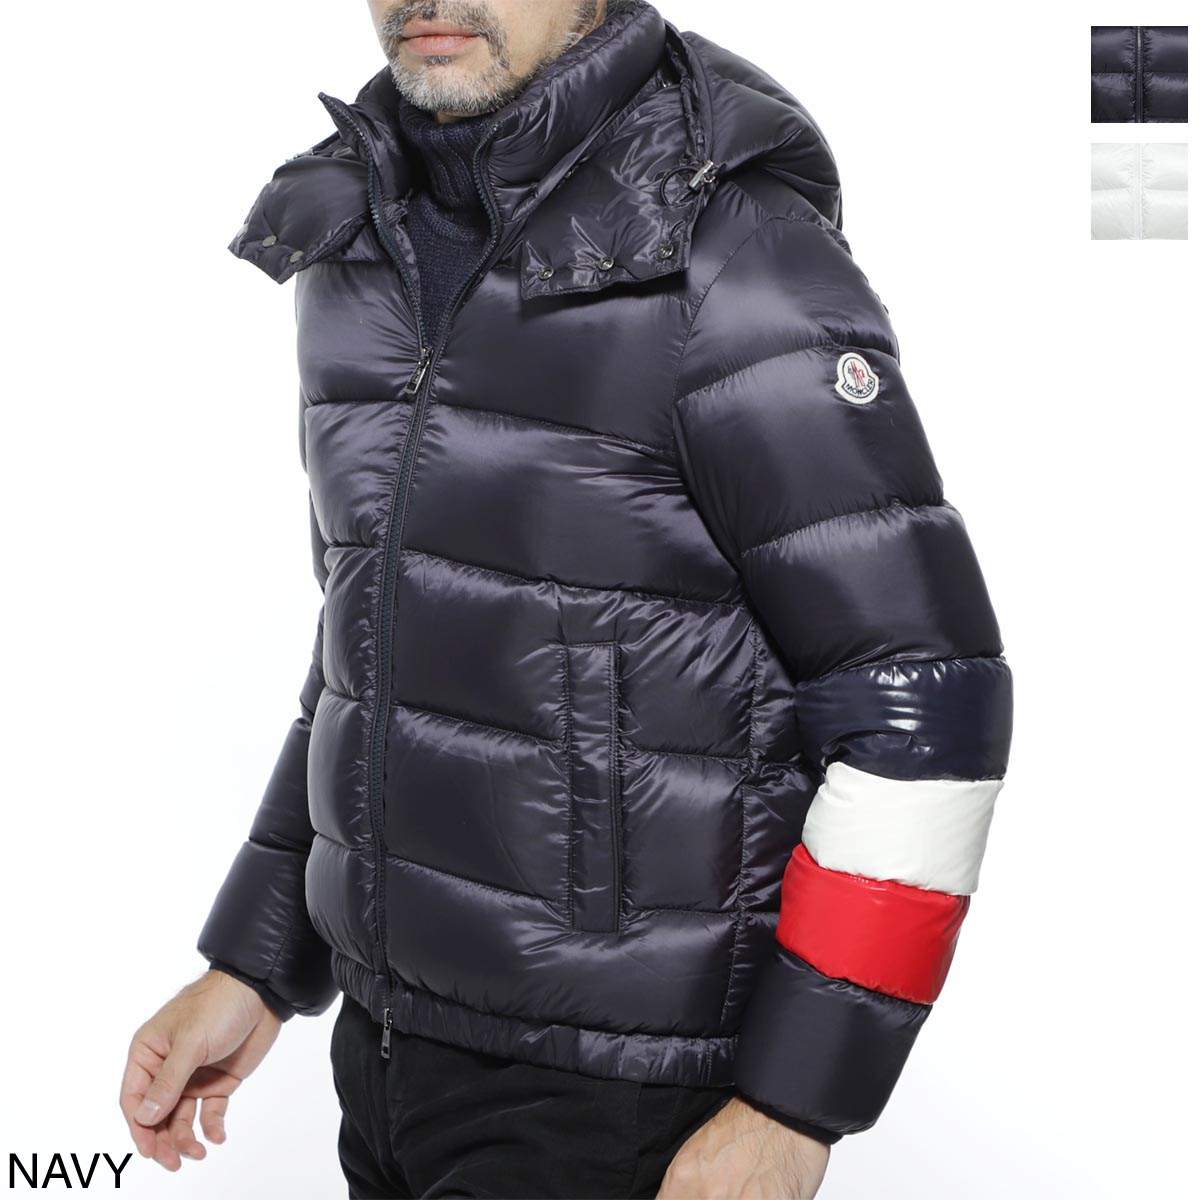 willm 4135585 c0104 742 WILLM GIUBBOTTO which there is the size that down jacket men down outer winter clothing with the Monk rail MONCLER food has a